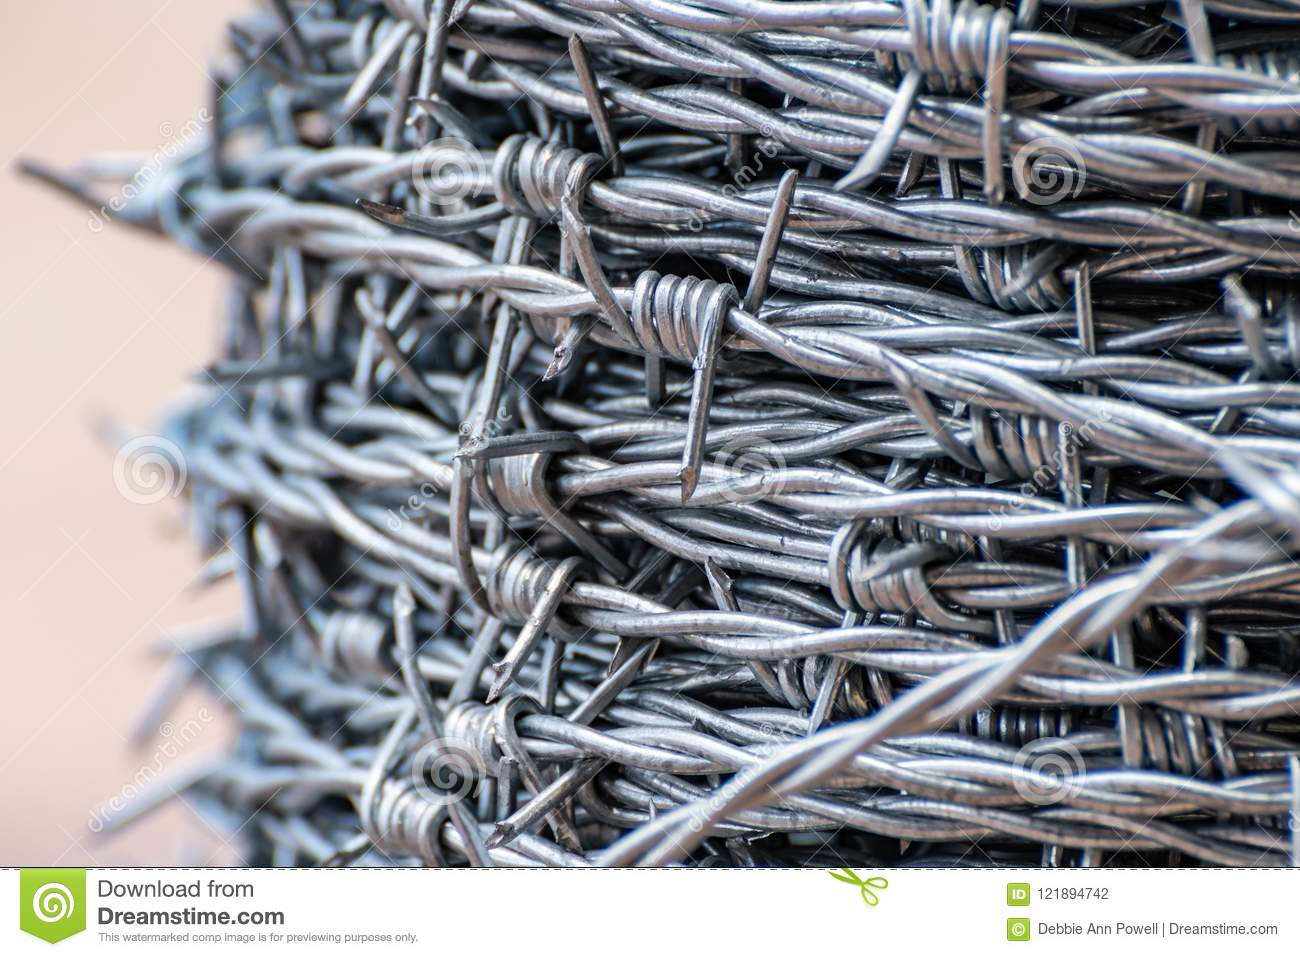 Up Close On Shiny New Barbed Wire Stock Photo - Image of protection ...